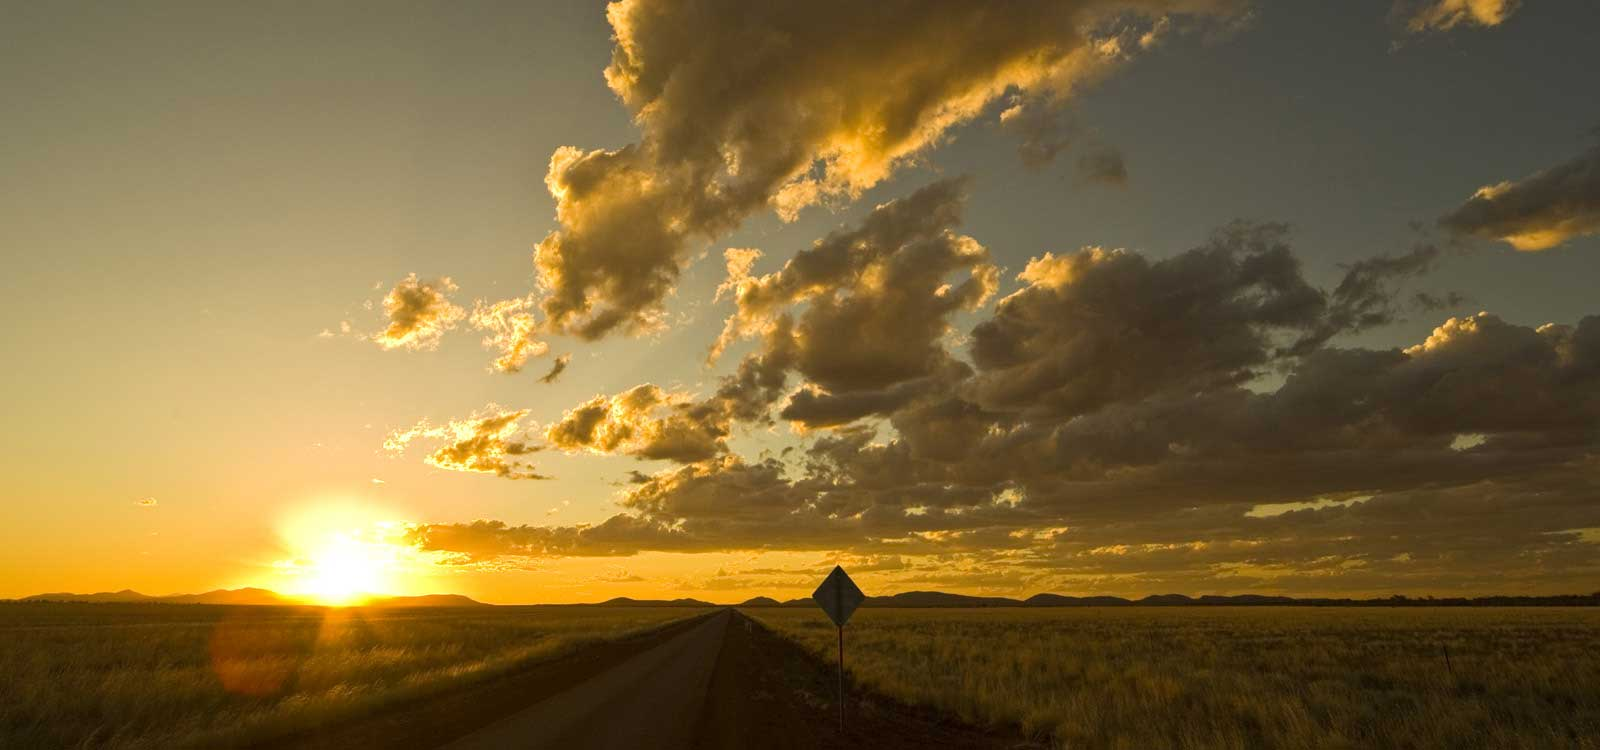 image of AARONTAIT-COPYRIGHTED-2014-5402 EDITORIAL DOCUMENTARY PHOTOGRAPHER PAPUNYA NORTHERN TERRITORY AUSTRALIA LANDSCAPE LIFE PEOPLE ART INDIGENOUS PINTUPI LURITJA PAPUNYA TULA SUNSET BIG SKY AUSTRALIA OUTBA